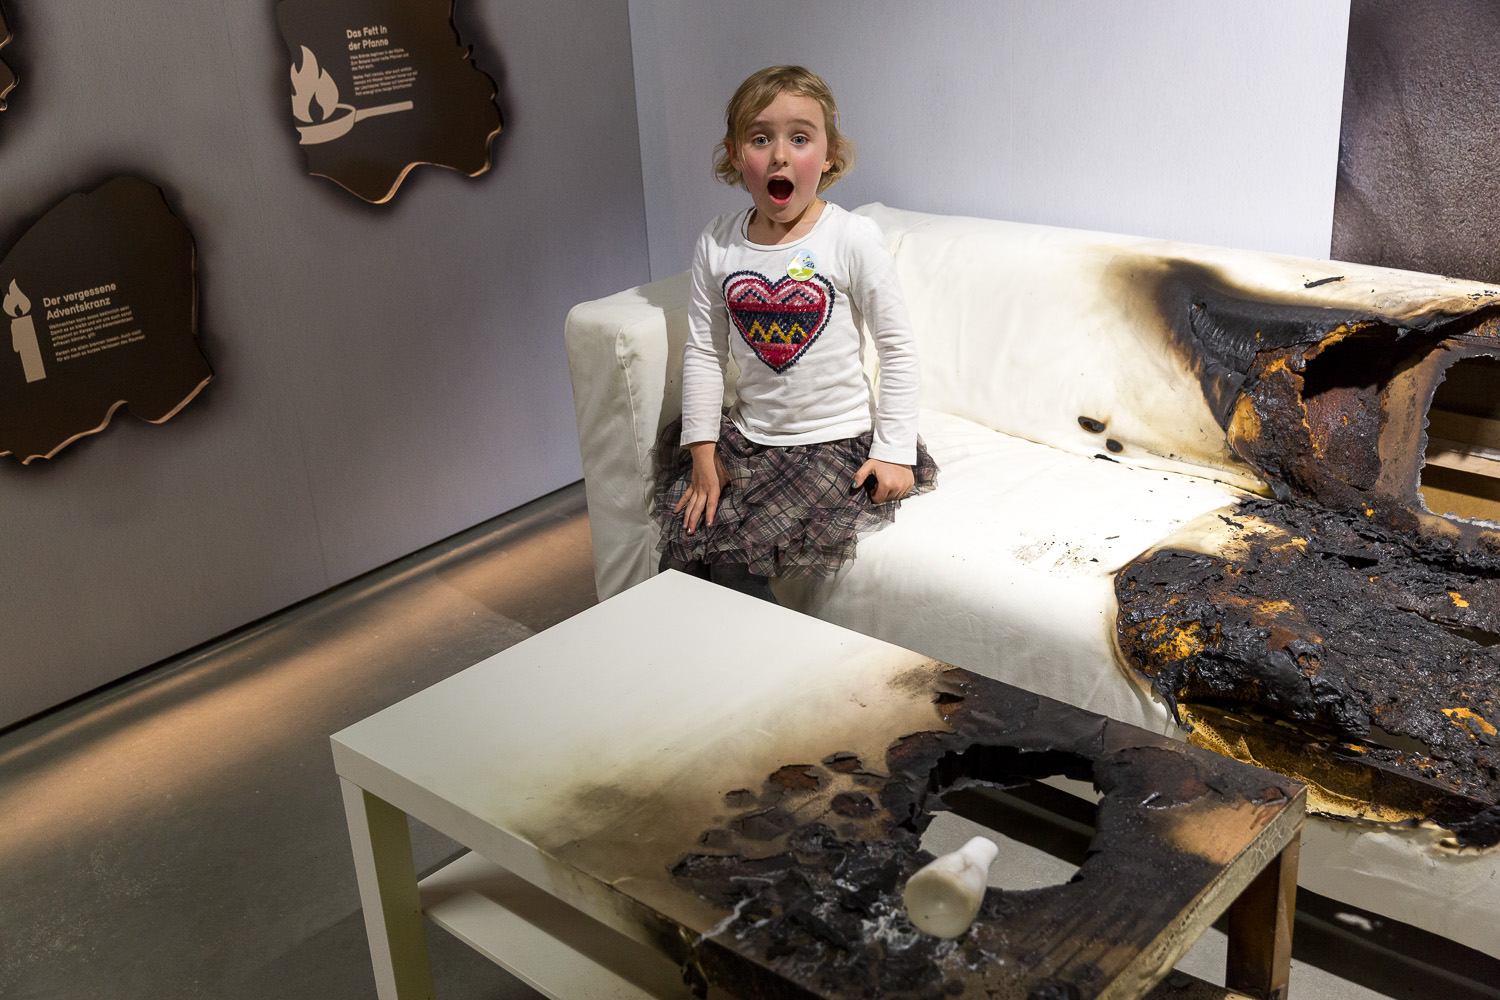 Surprised child sits on half burnt sofa